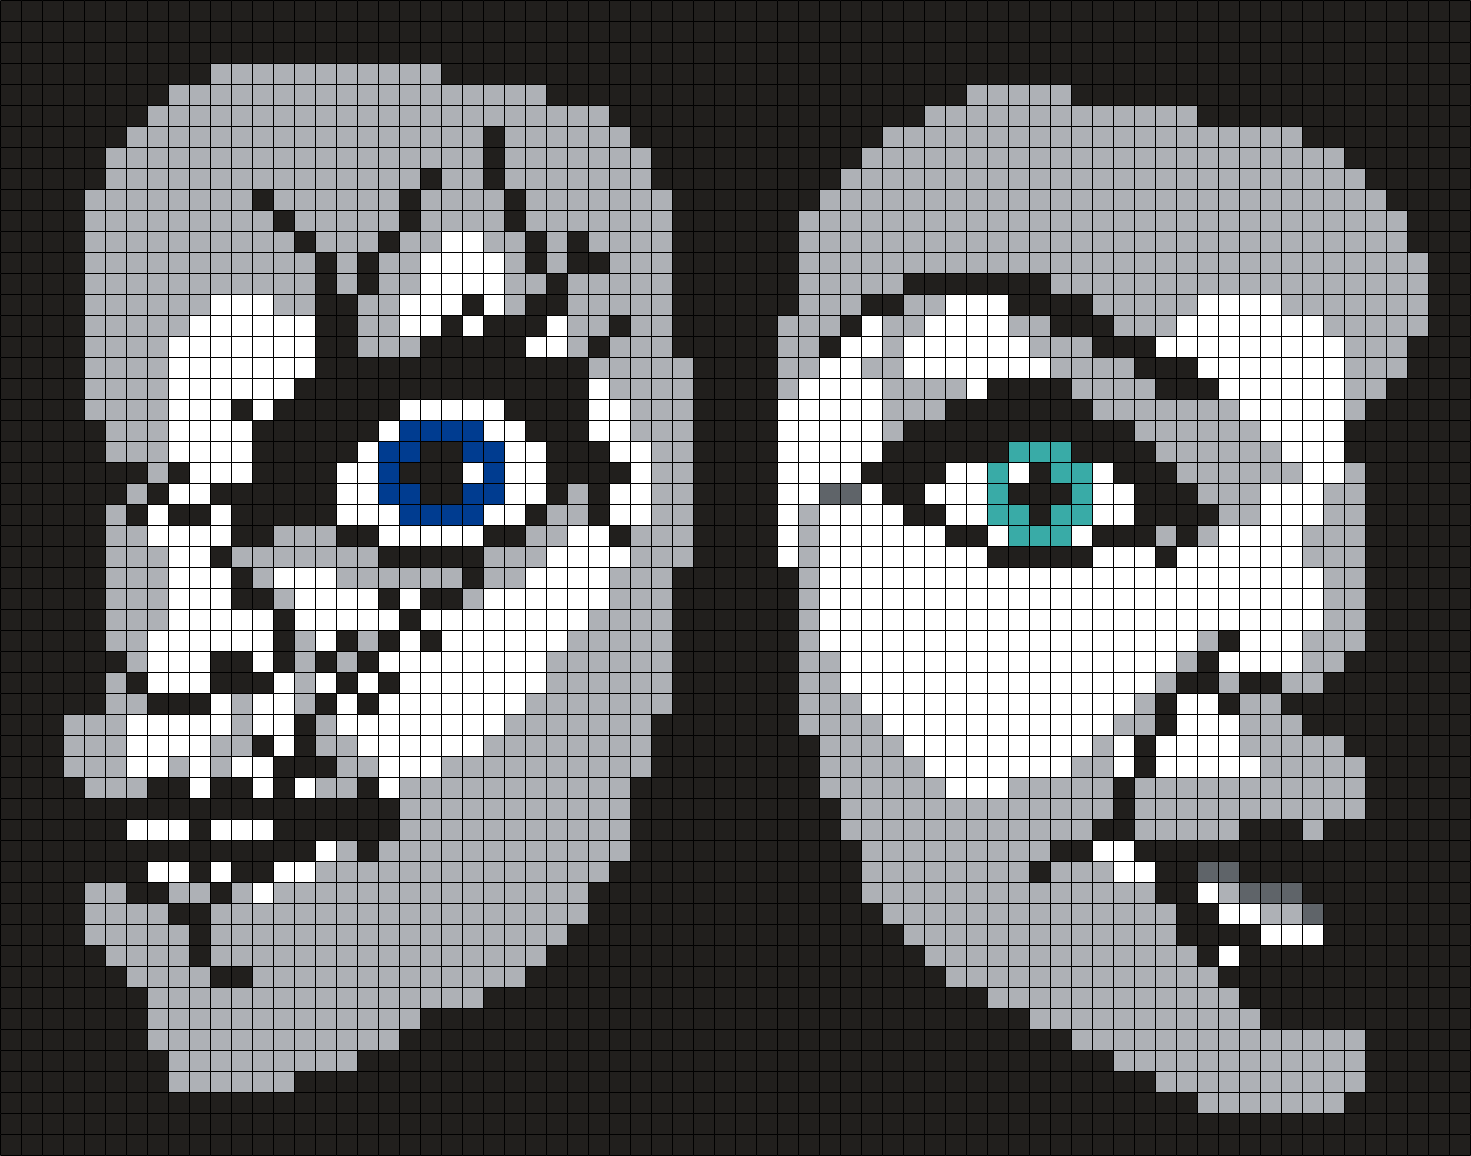 Chucky And Tiffany From Bride Of Chucky Perler Bead Pattern / Bead Sprite